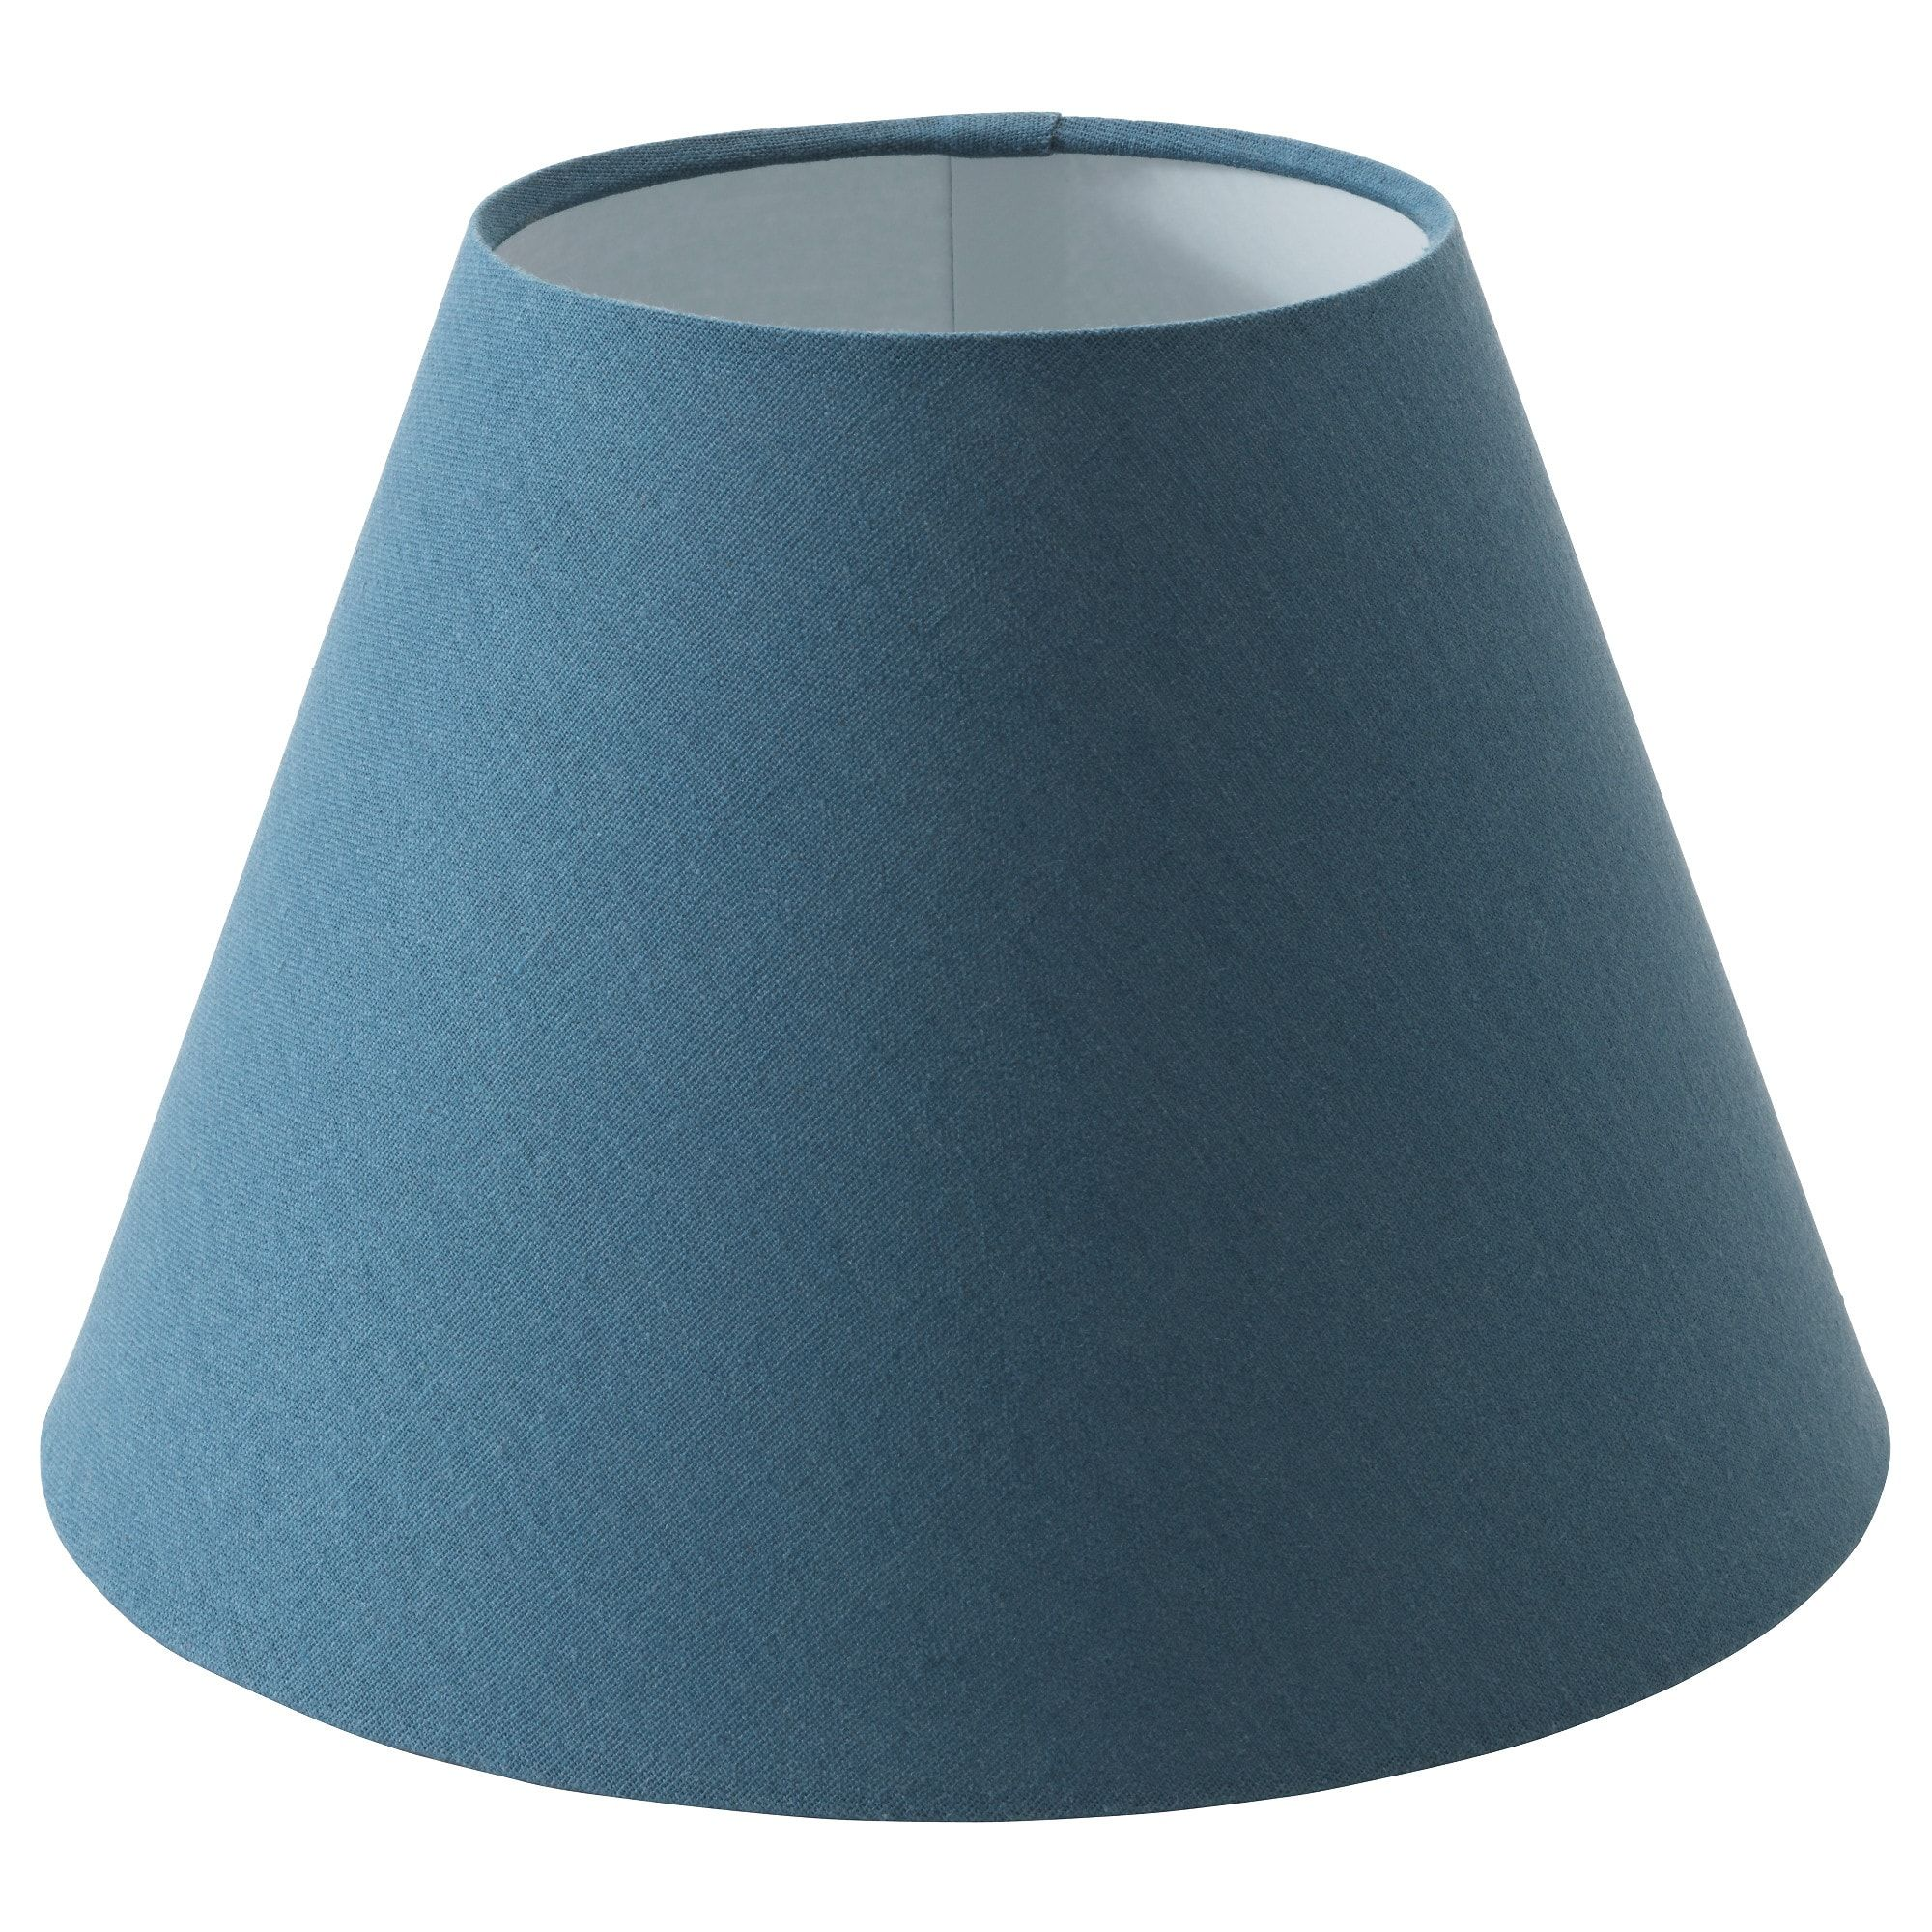 IKEA OLLSTA Blue Lamp shade | Lamp shade, Blue lamp shade